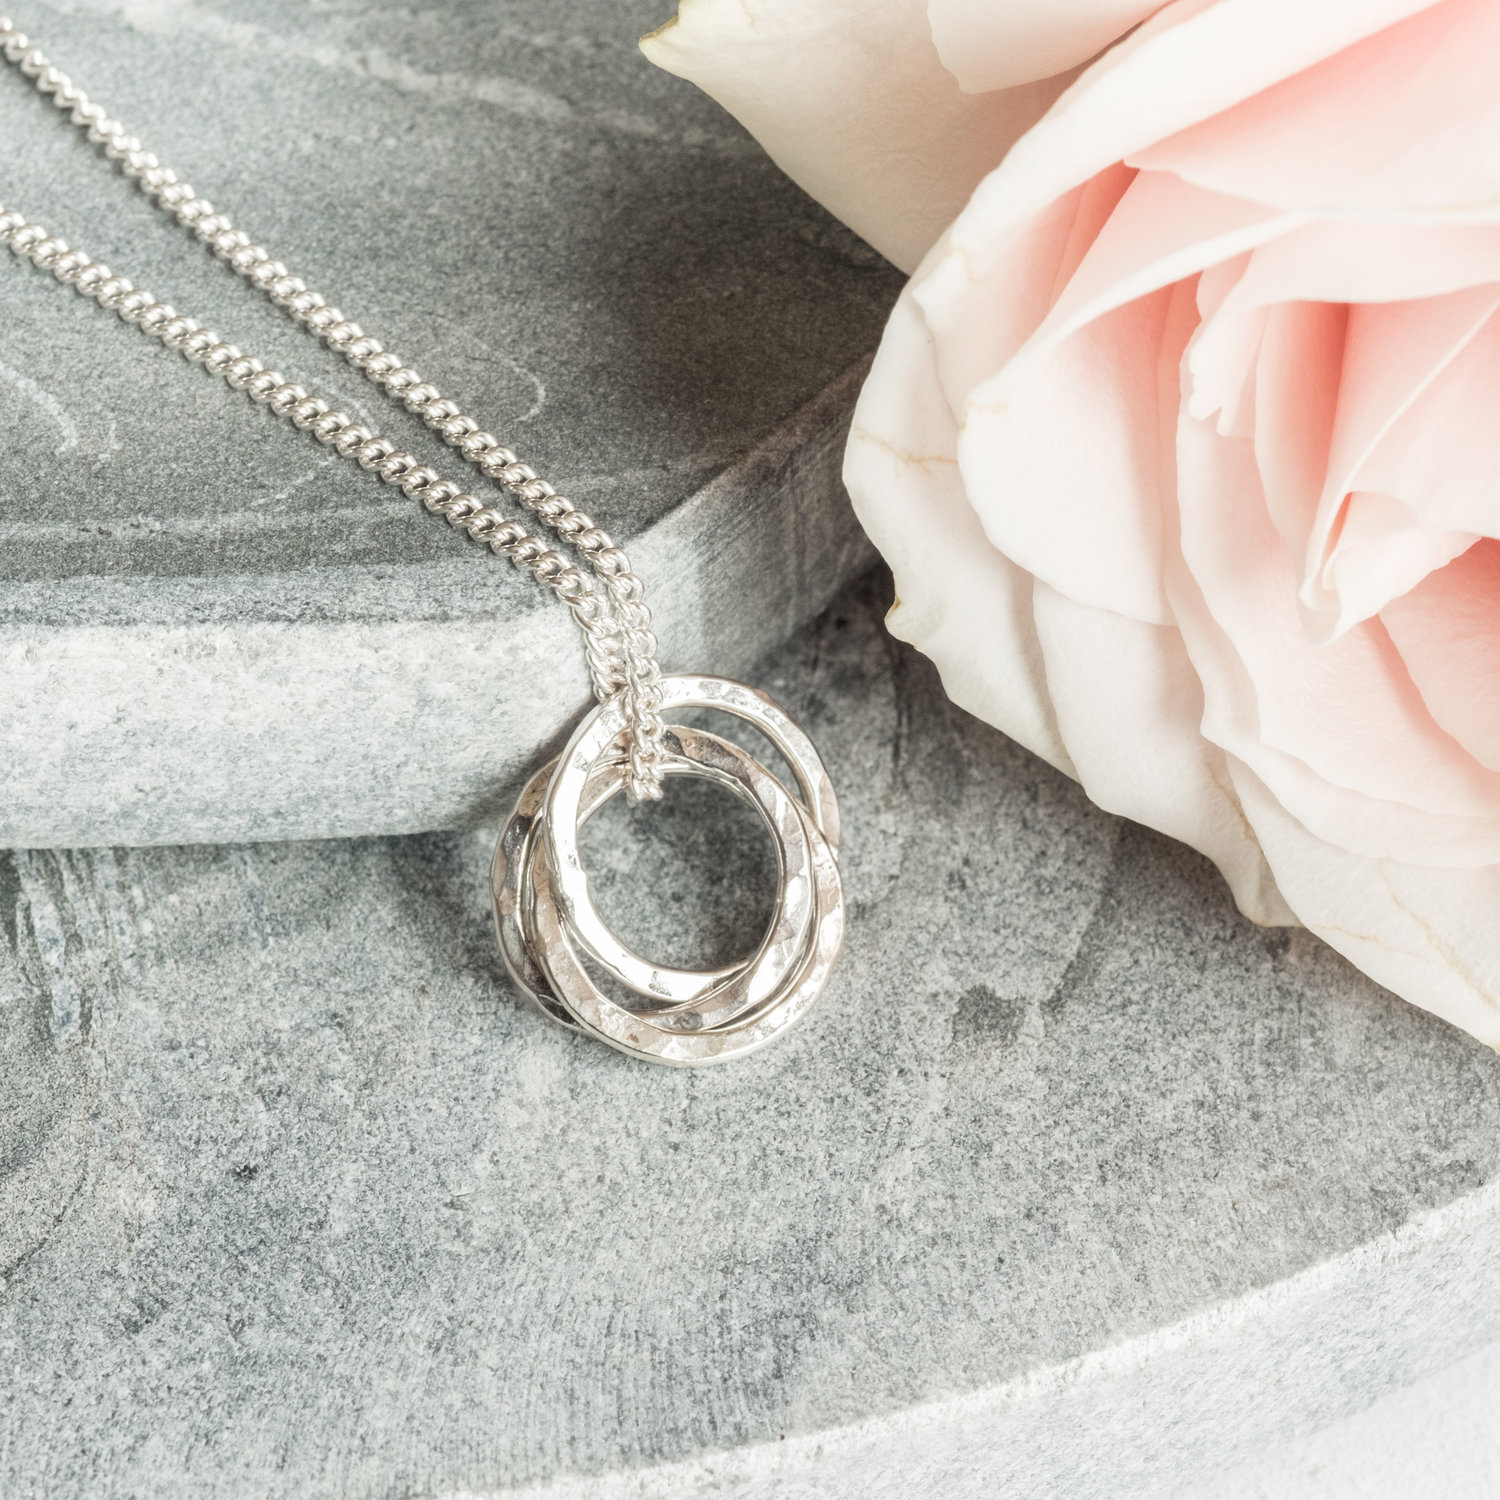 Russian Ring Necklace, £40